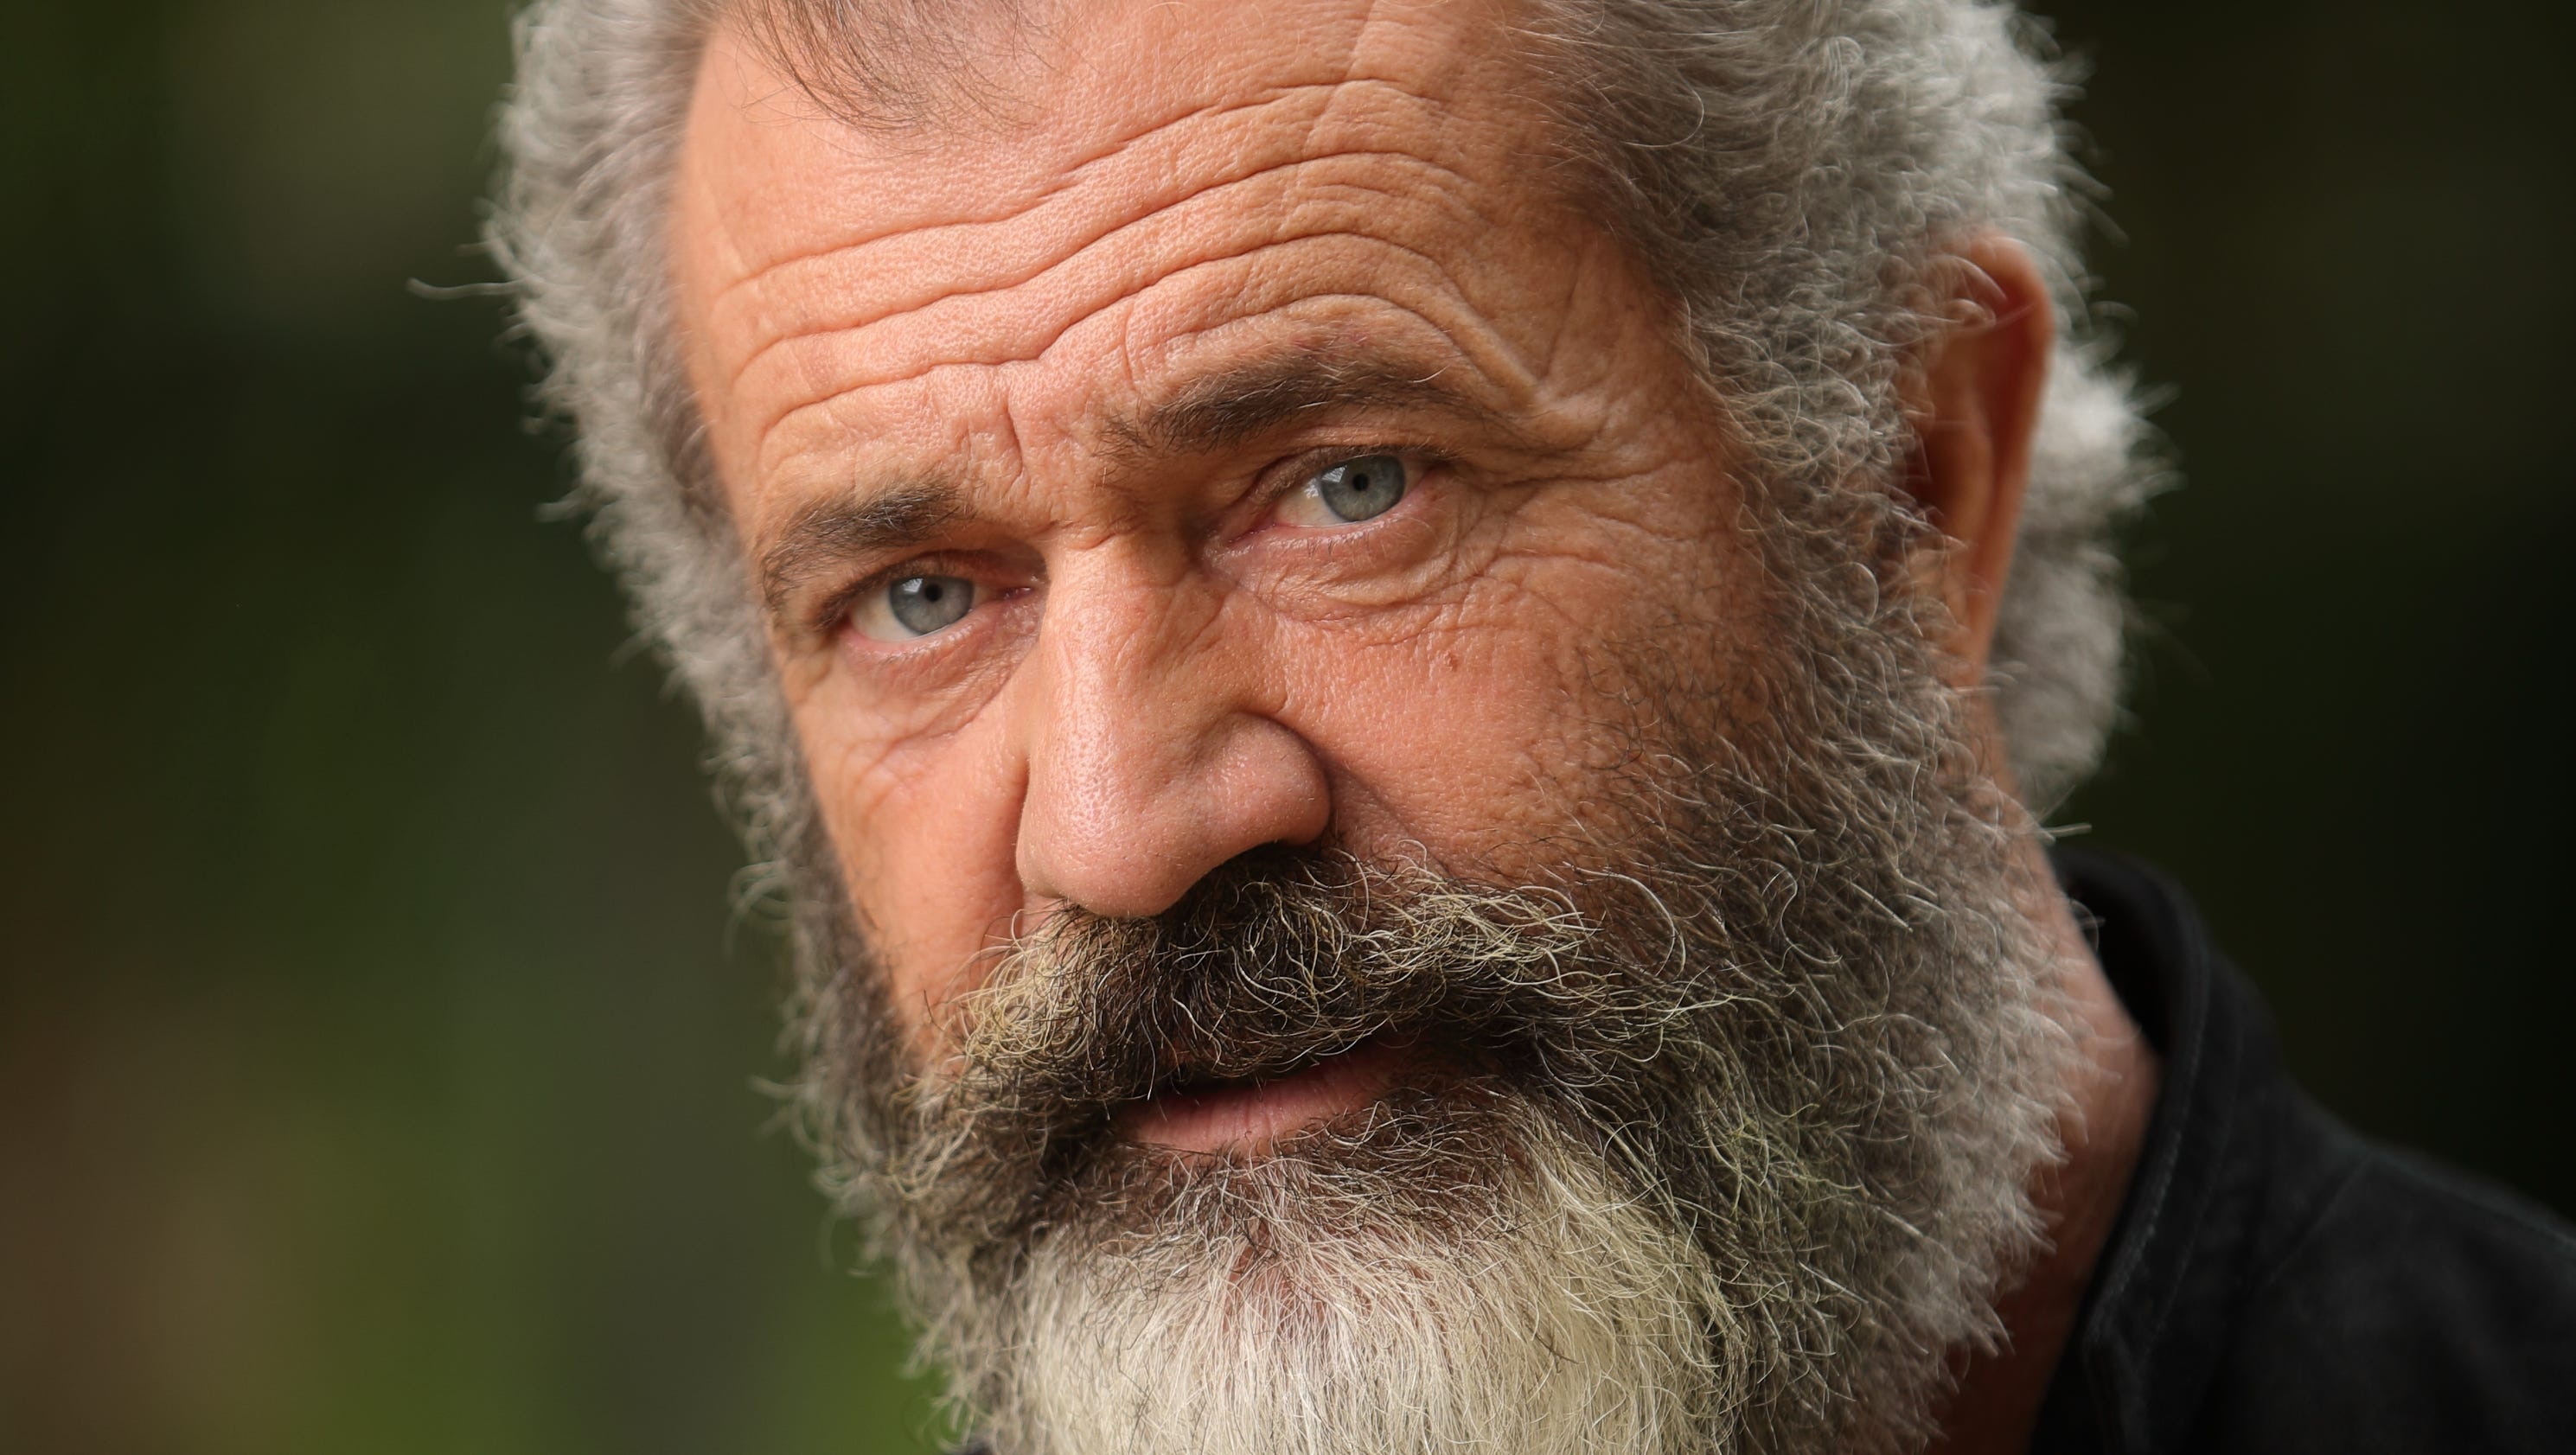 mel gibson readying return to his passion project